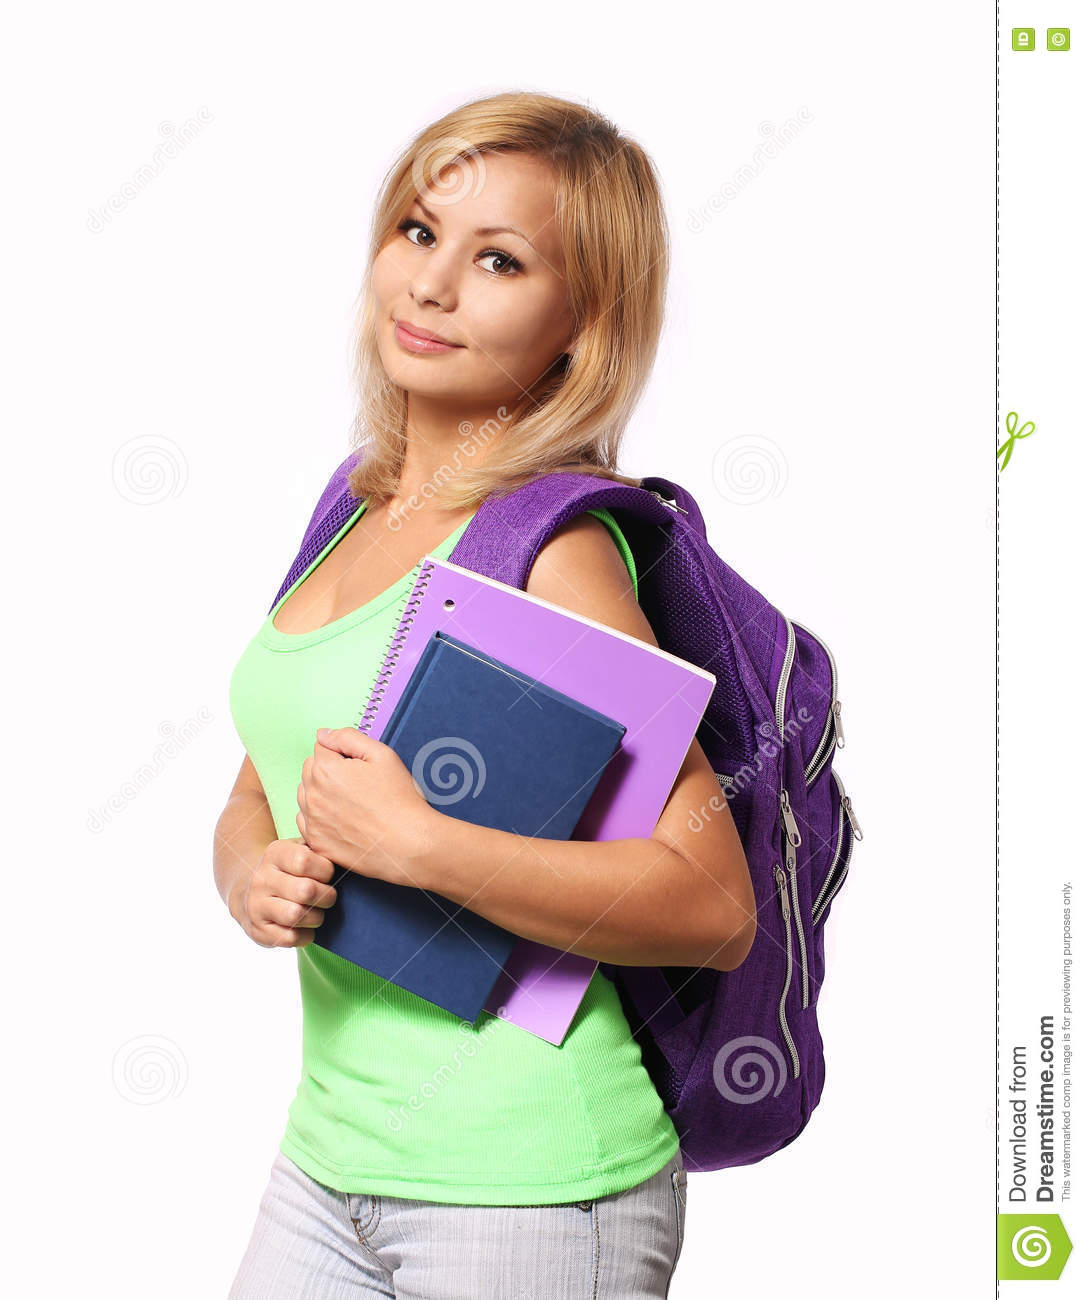 Student girl with backpack and books isolated